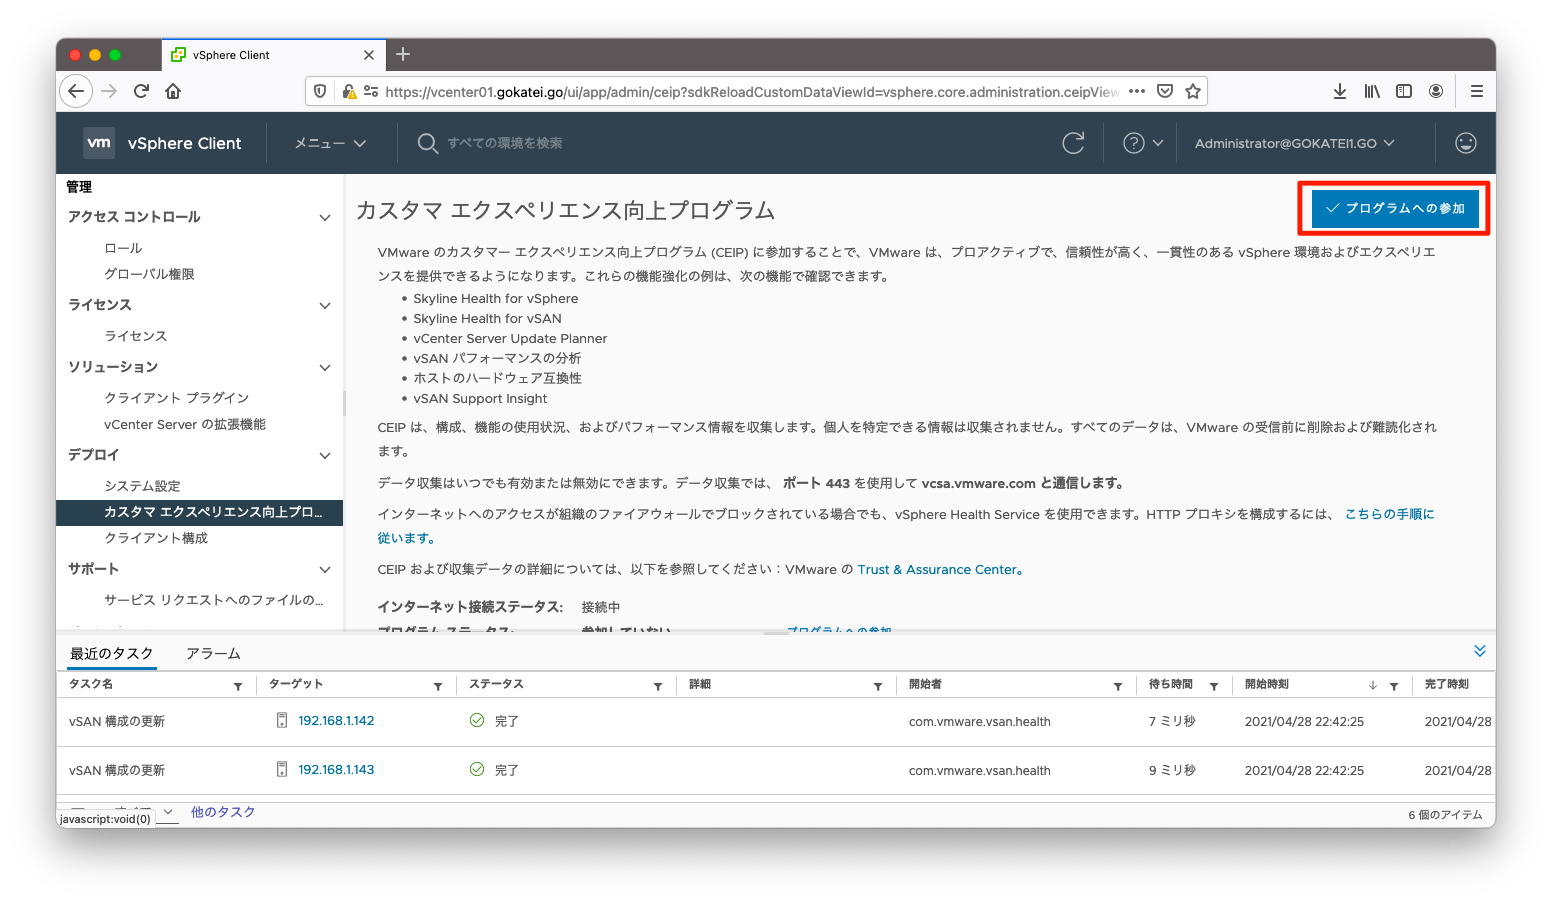 vSAN Support Insight 03